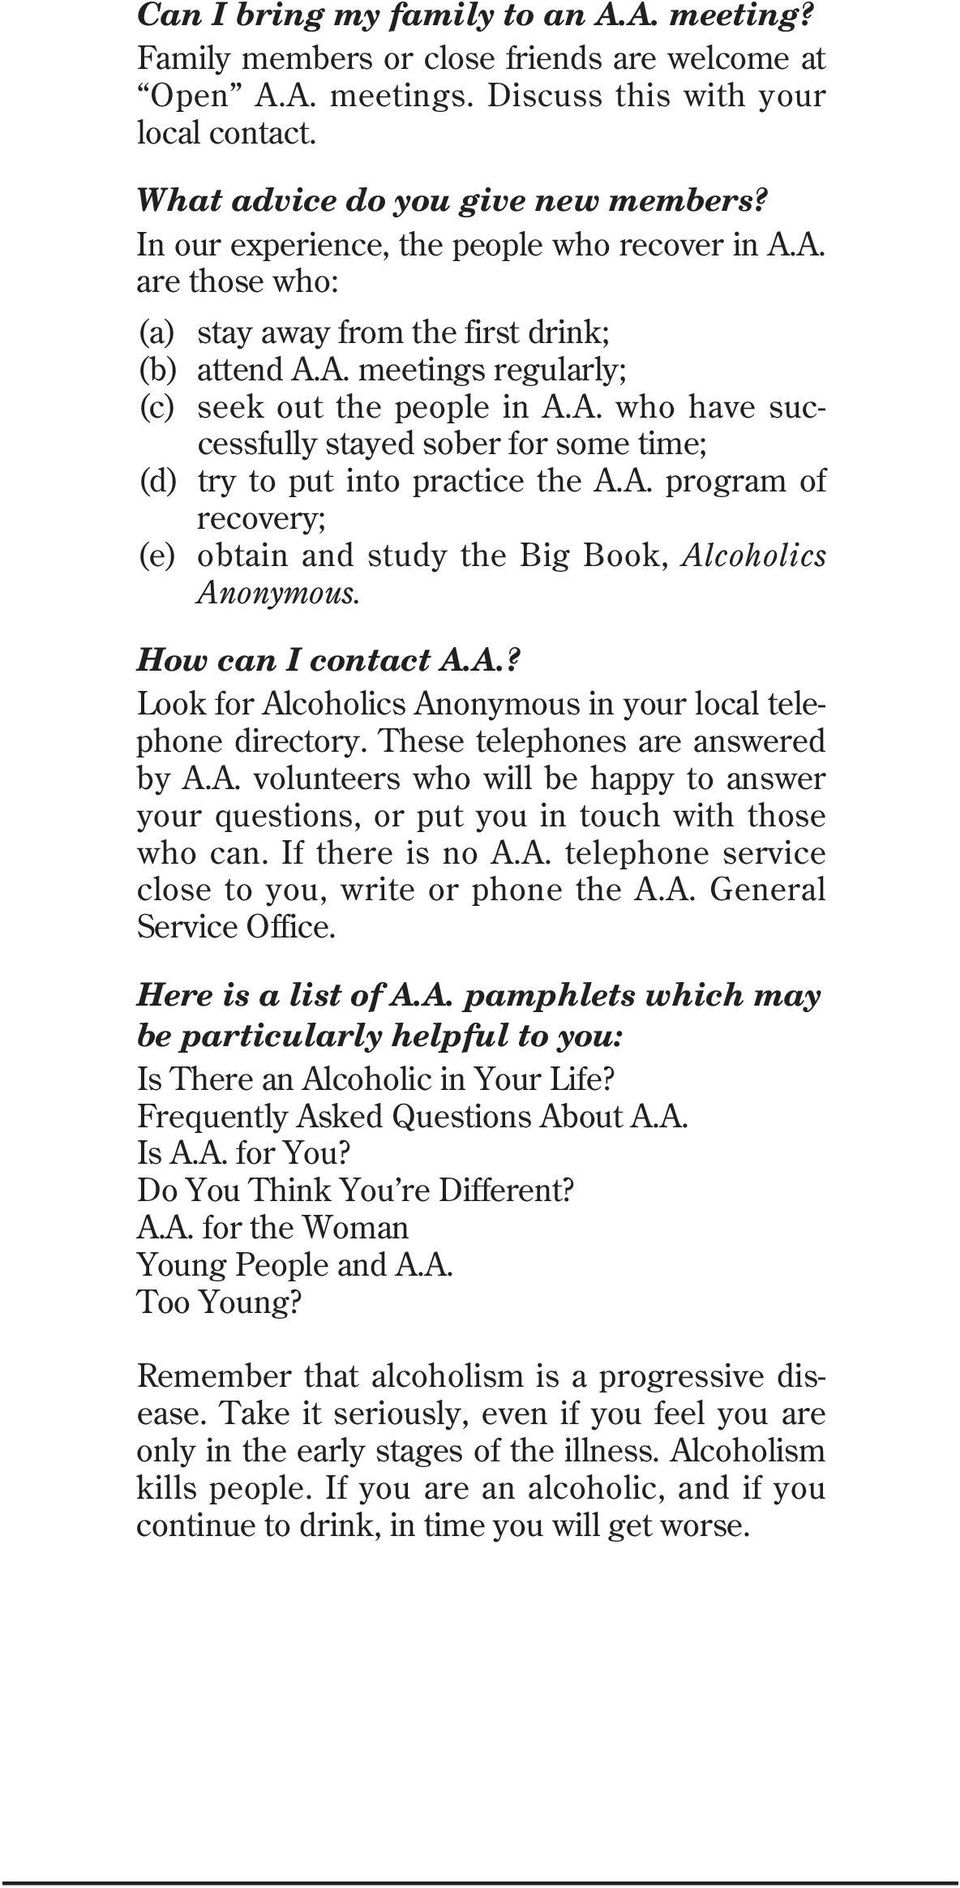 A. program of recovery; (e) obtain and study the Big Book, Alcoholics Anonymous. How can I contact A.A.? Look for Alcoholics Anonymous in your local telephone directory.